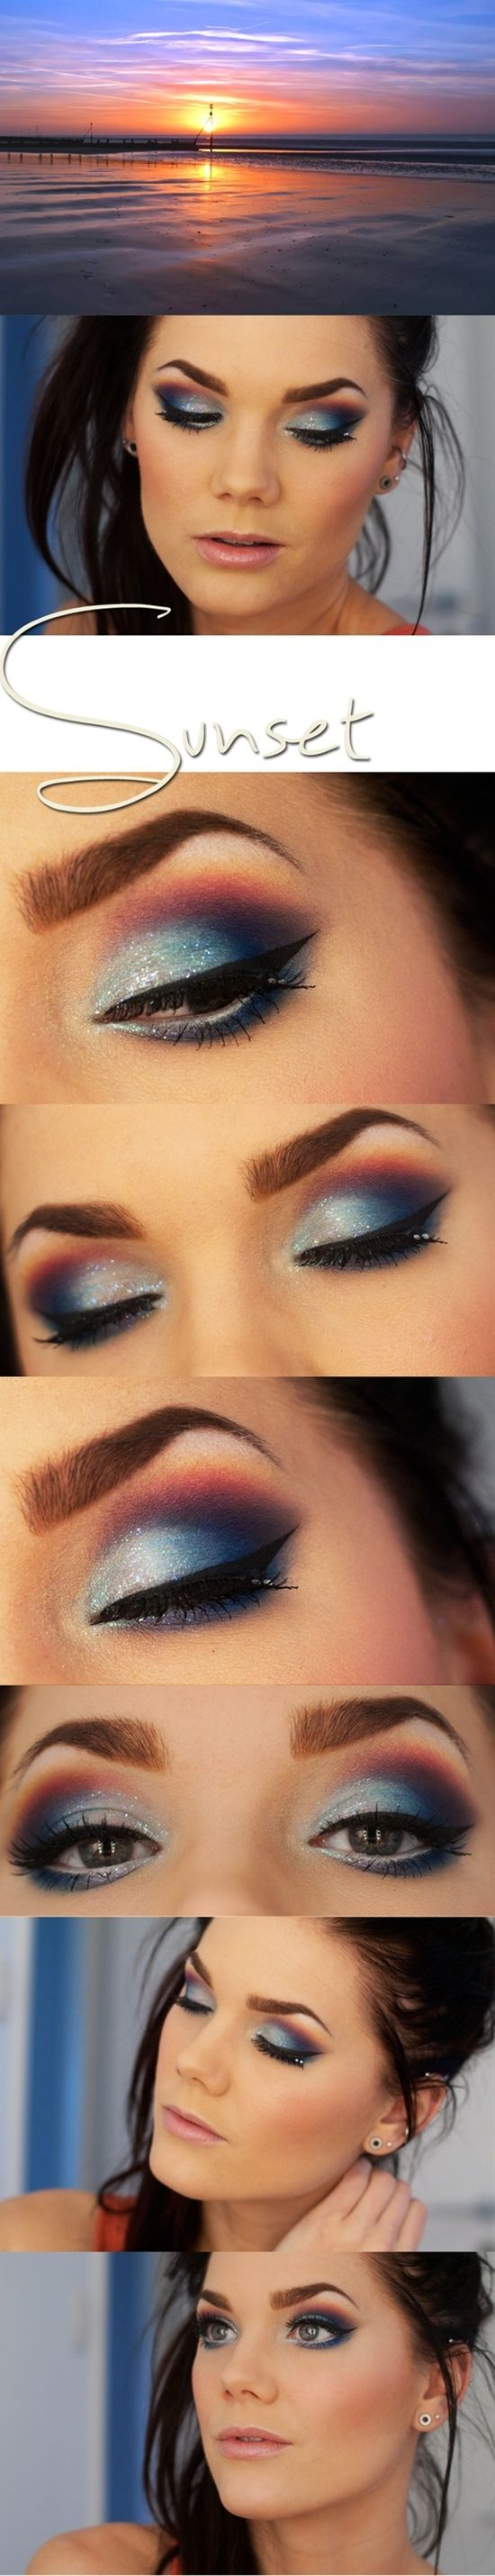 sunset makeup - I don't know if I like this one....